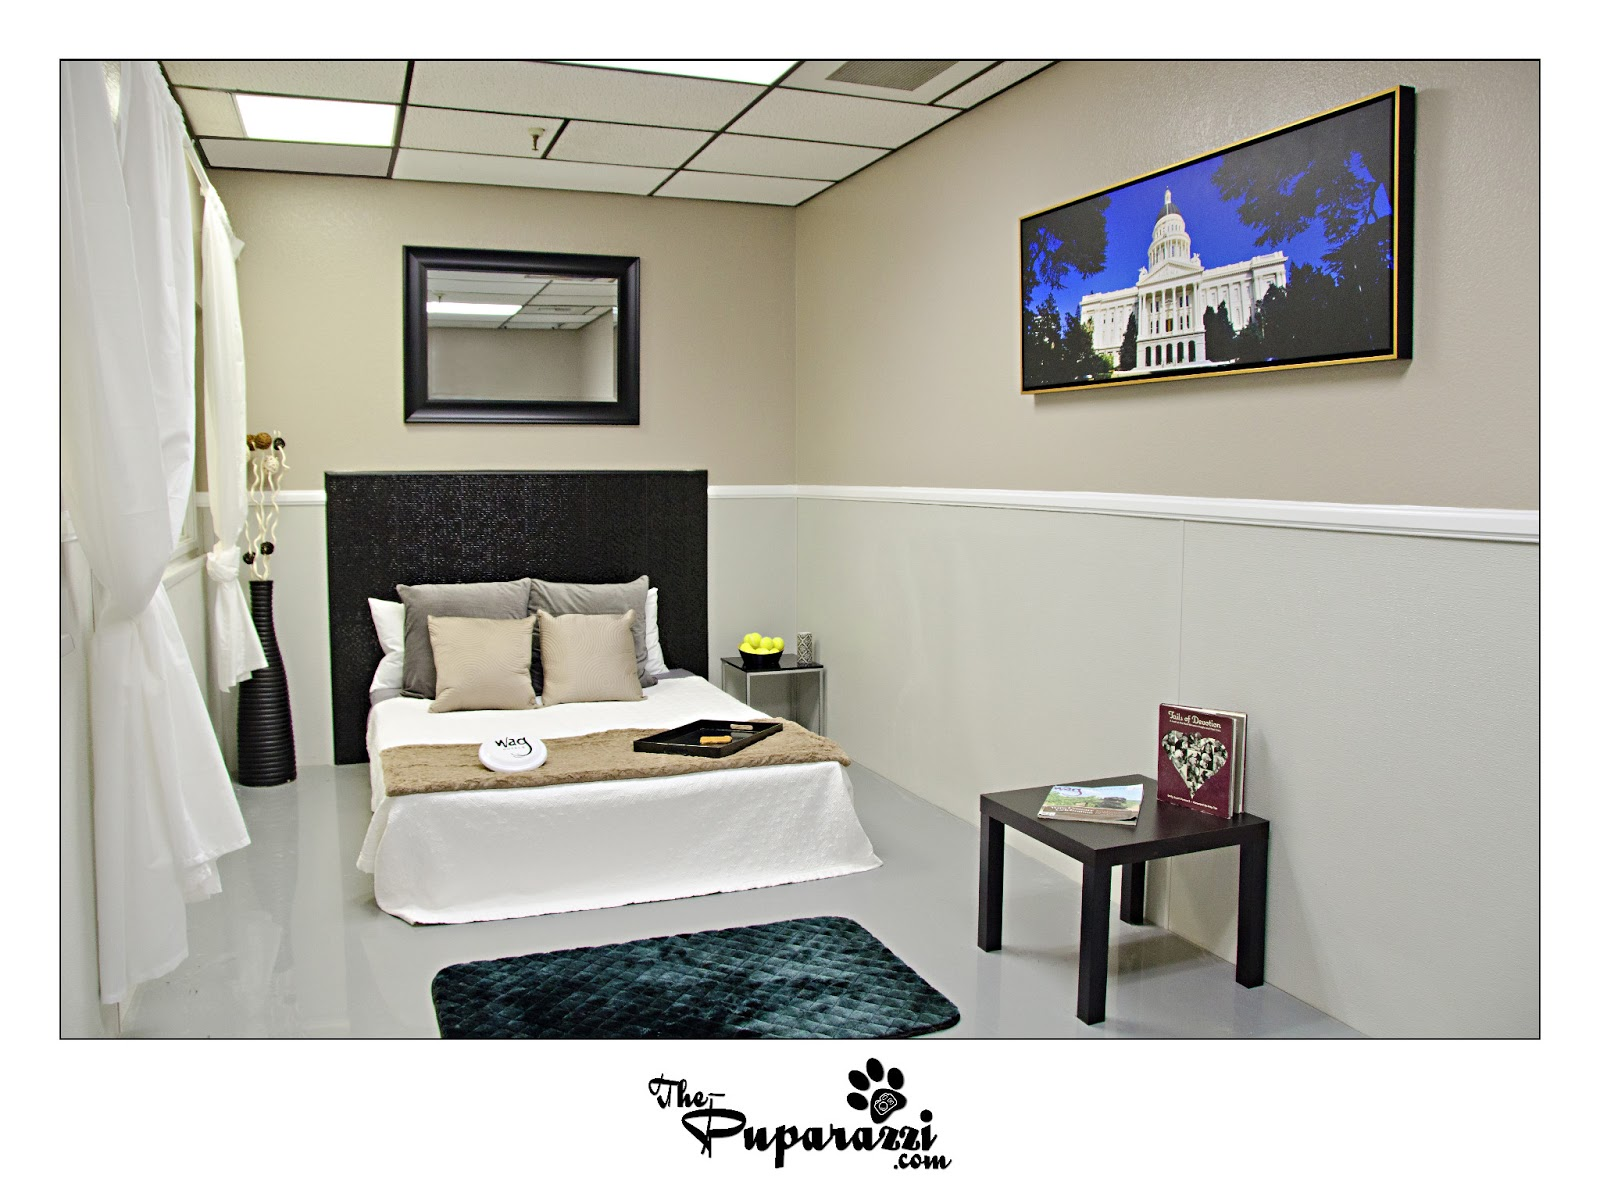 Photoshoot For Wag Hotel Sacramento Capitol Suite